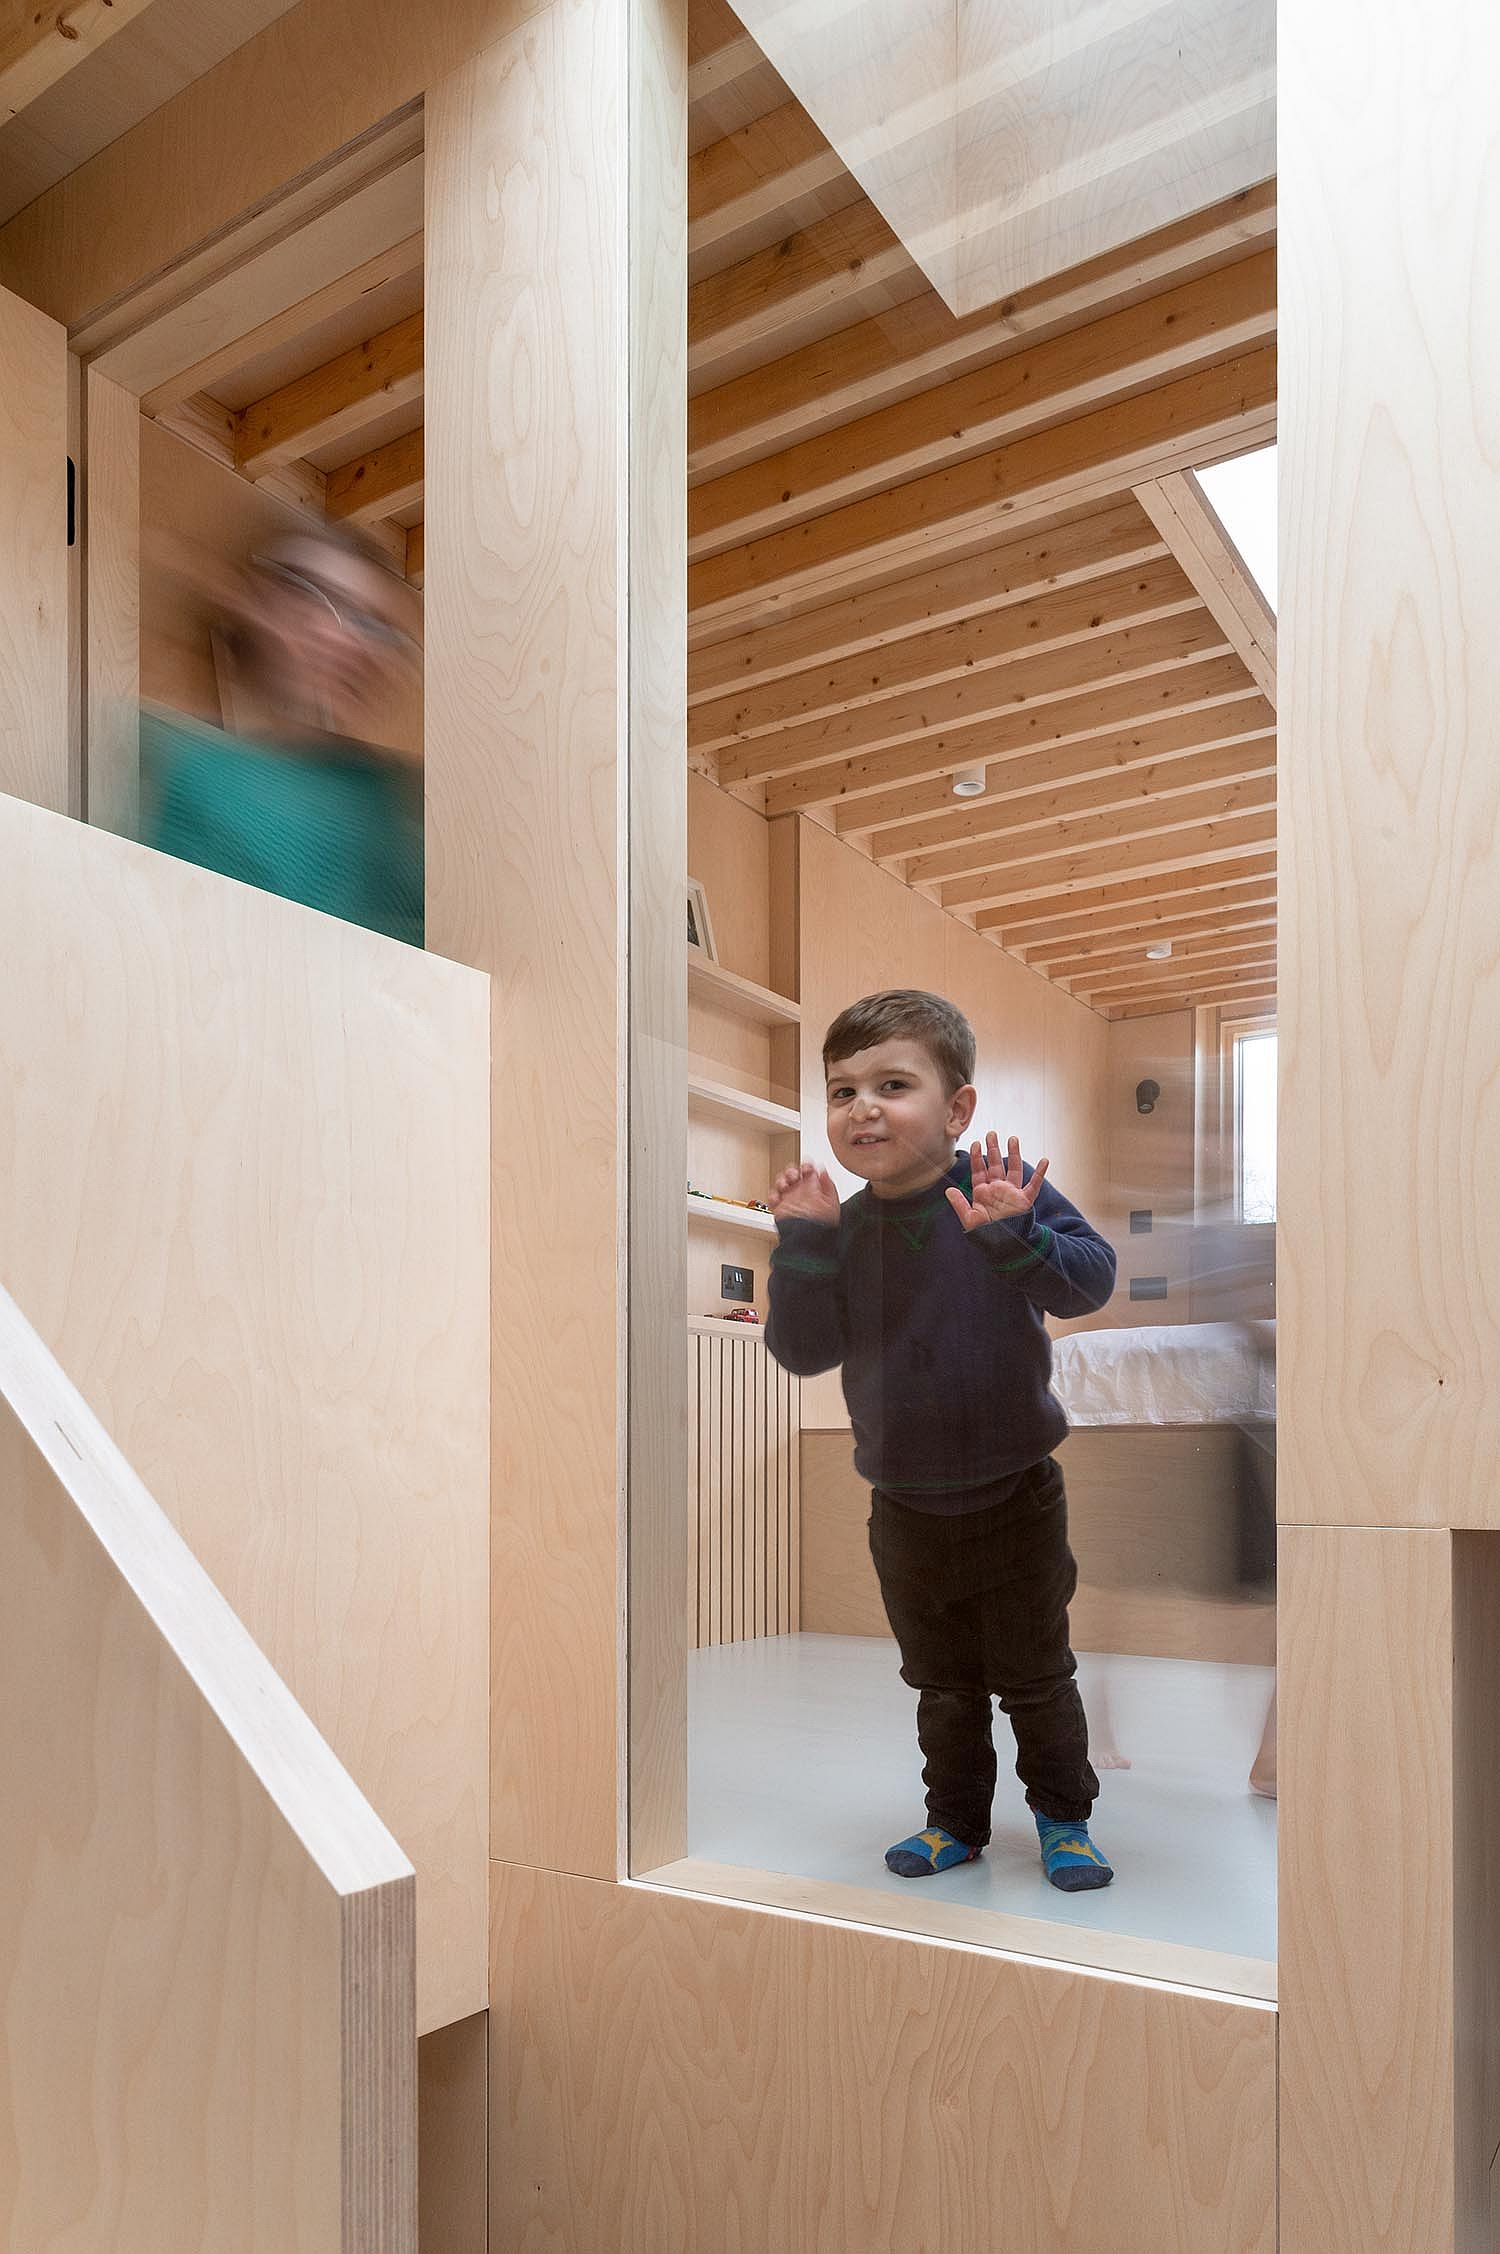 Large window on the upper level allows the homeowners to keep an eye on the little ones